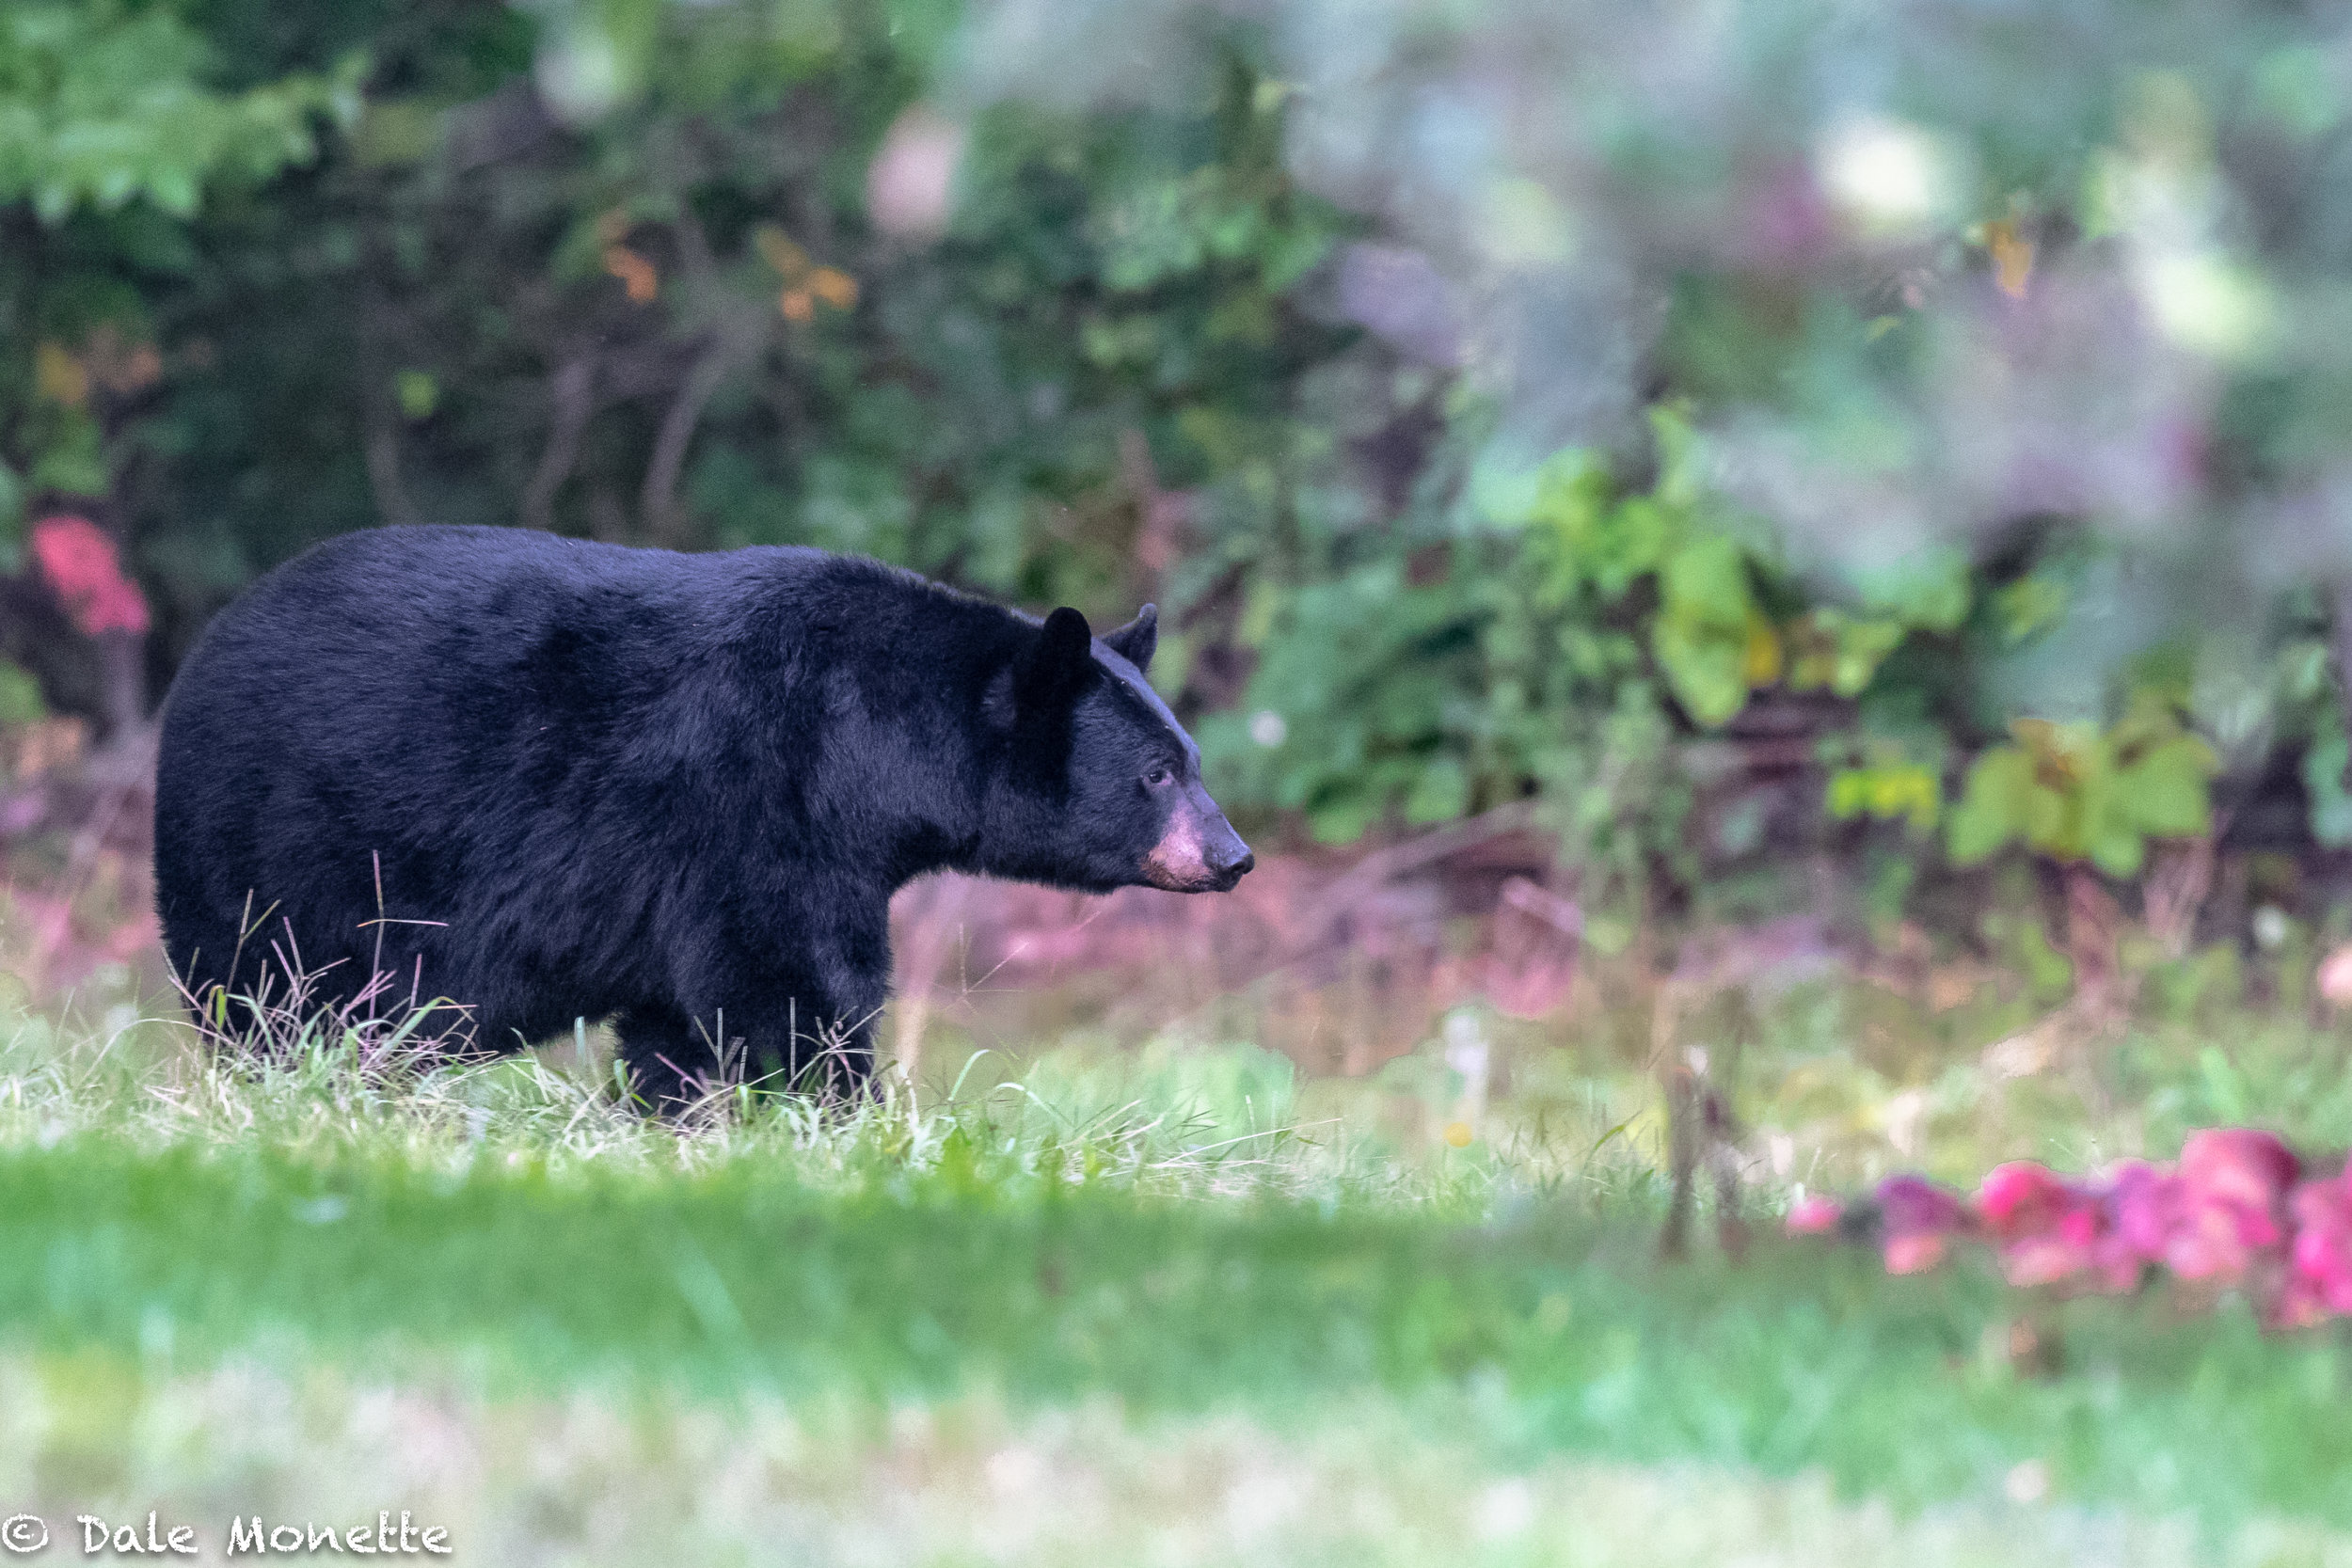 This large bear is zeroing in on a pile of apples that have fallen and thinking what a find !